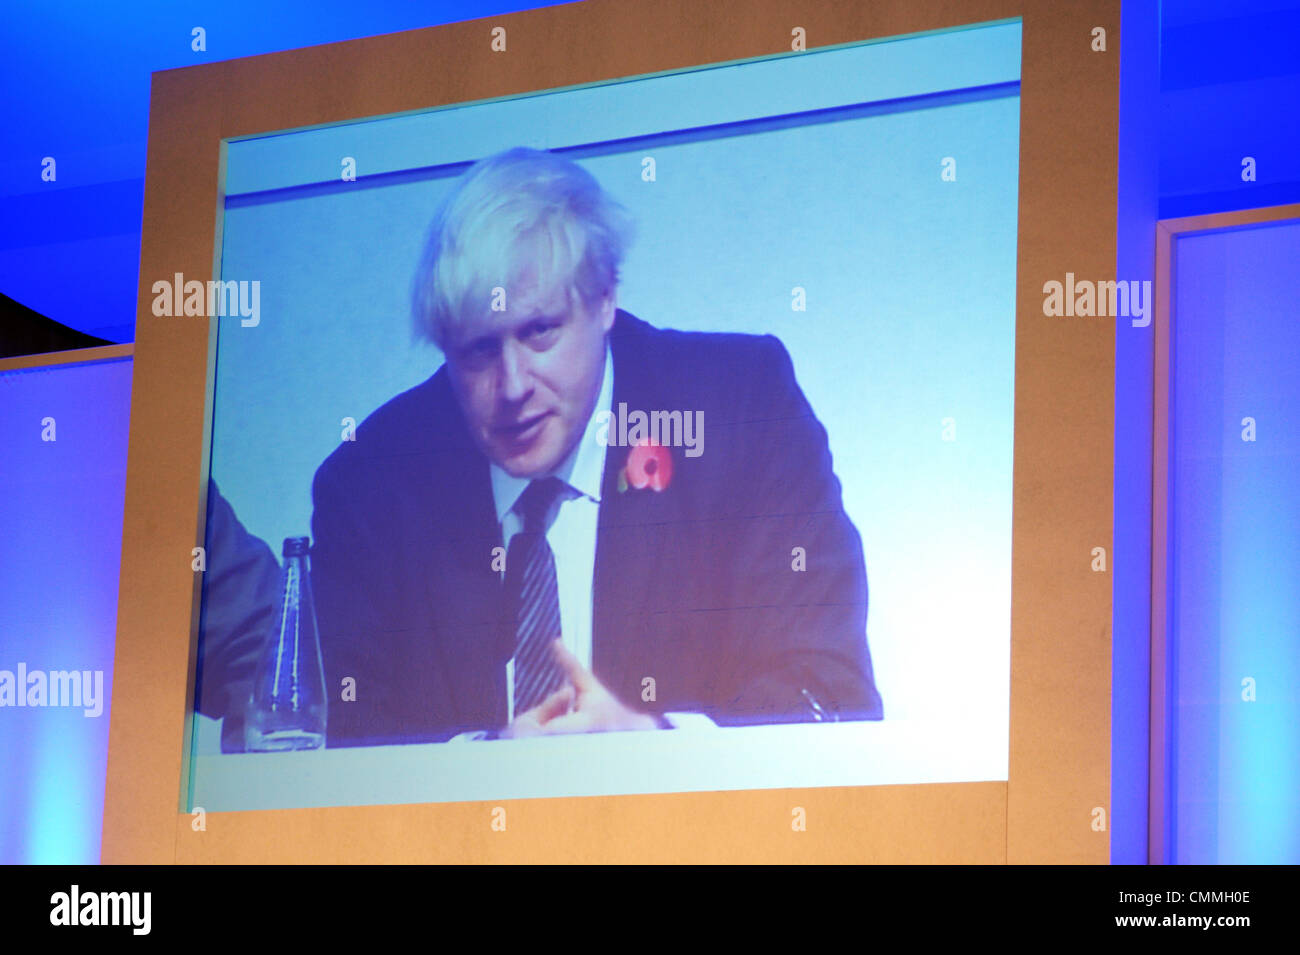 London, UK. 5th November 2013. Boris Johnson meets the Londoners at People's Question Time held at Imperial - Stock Image